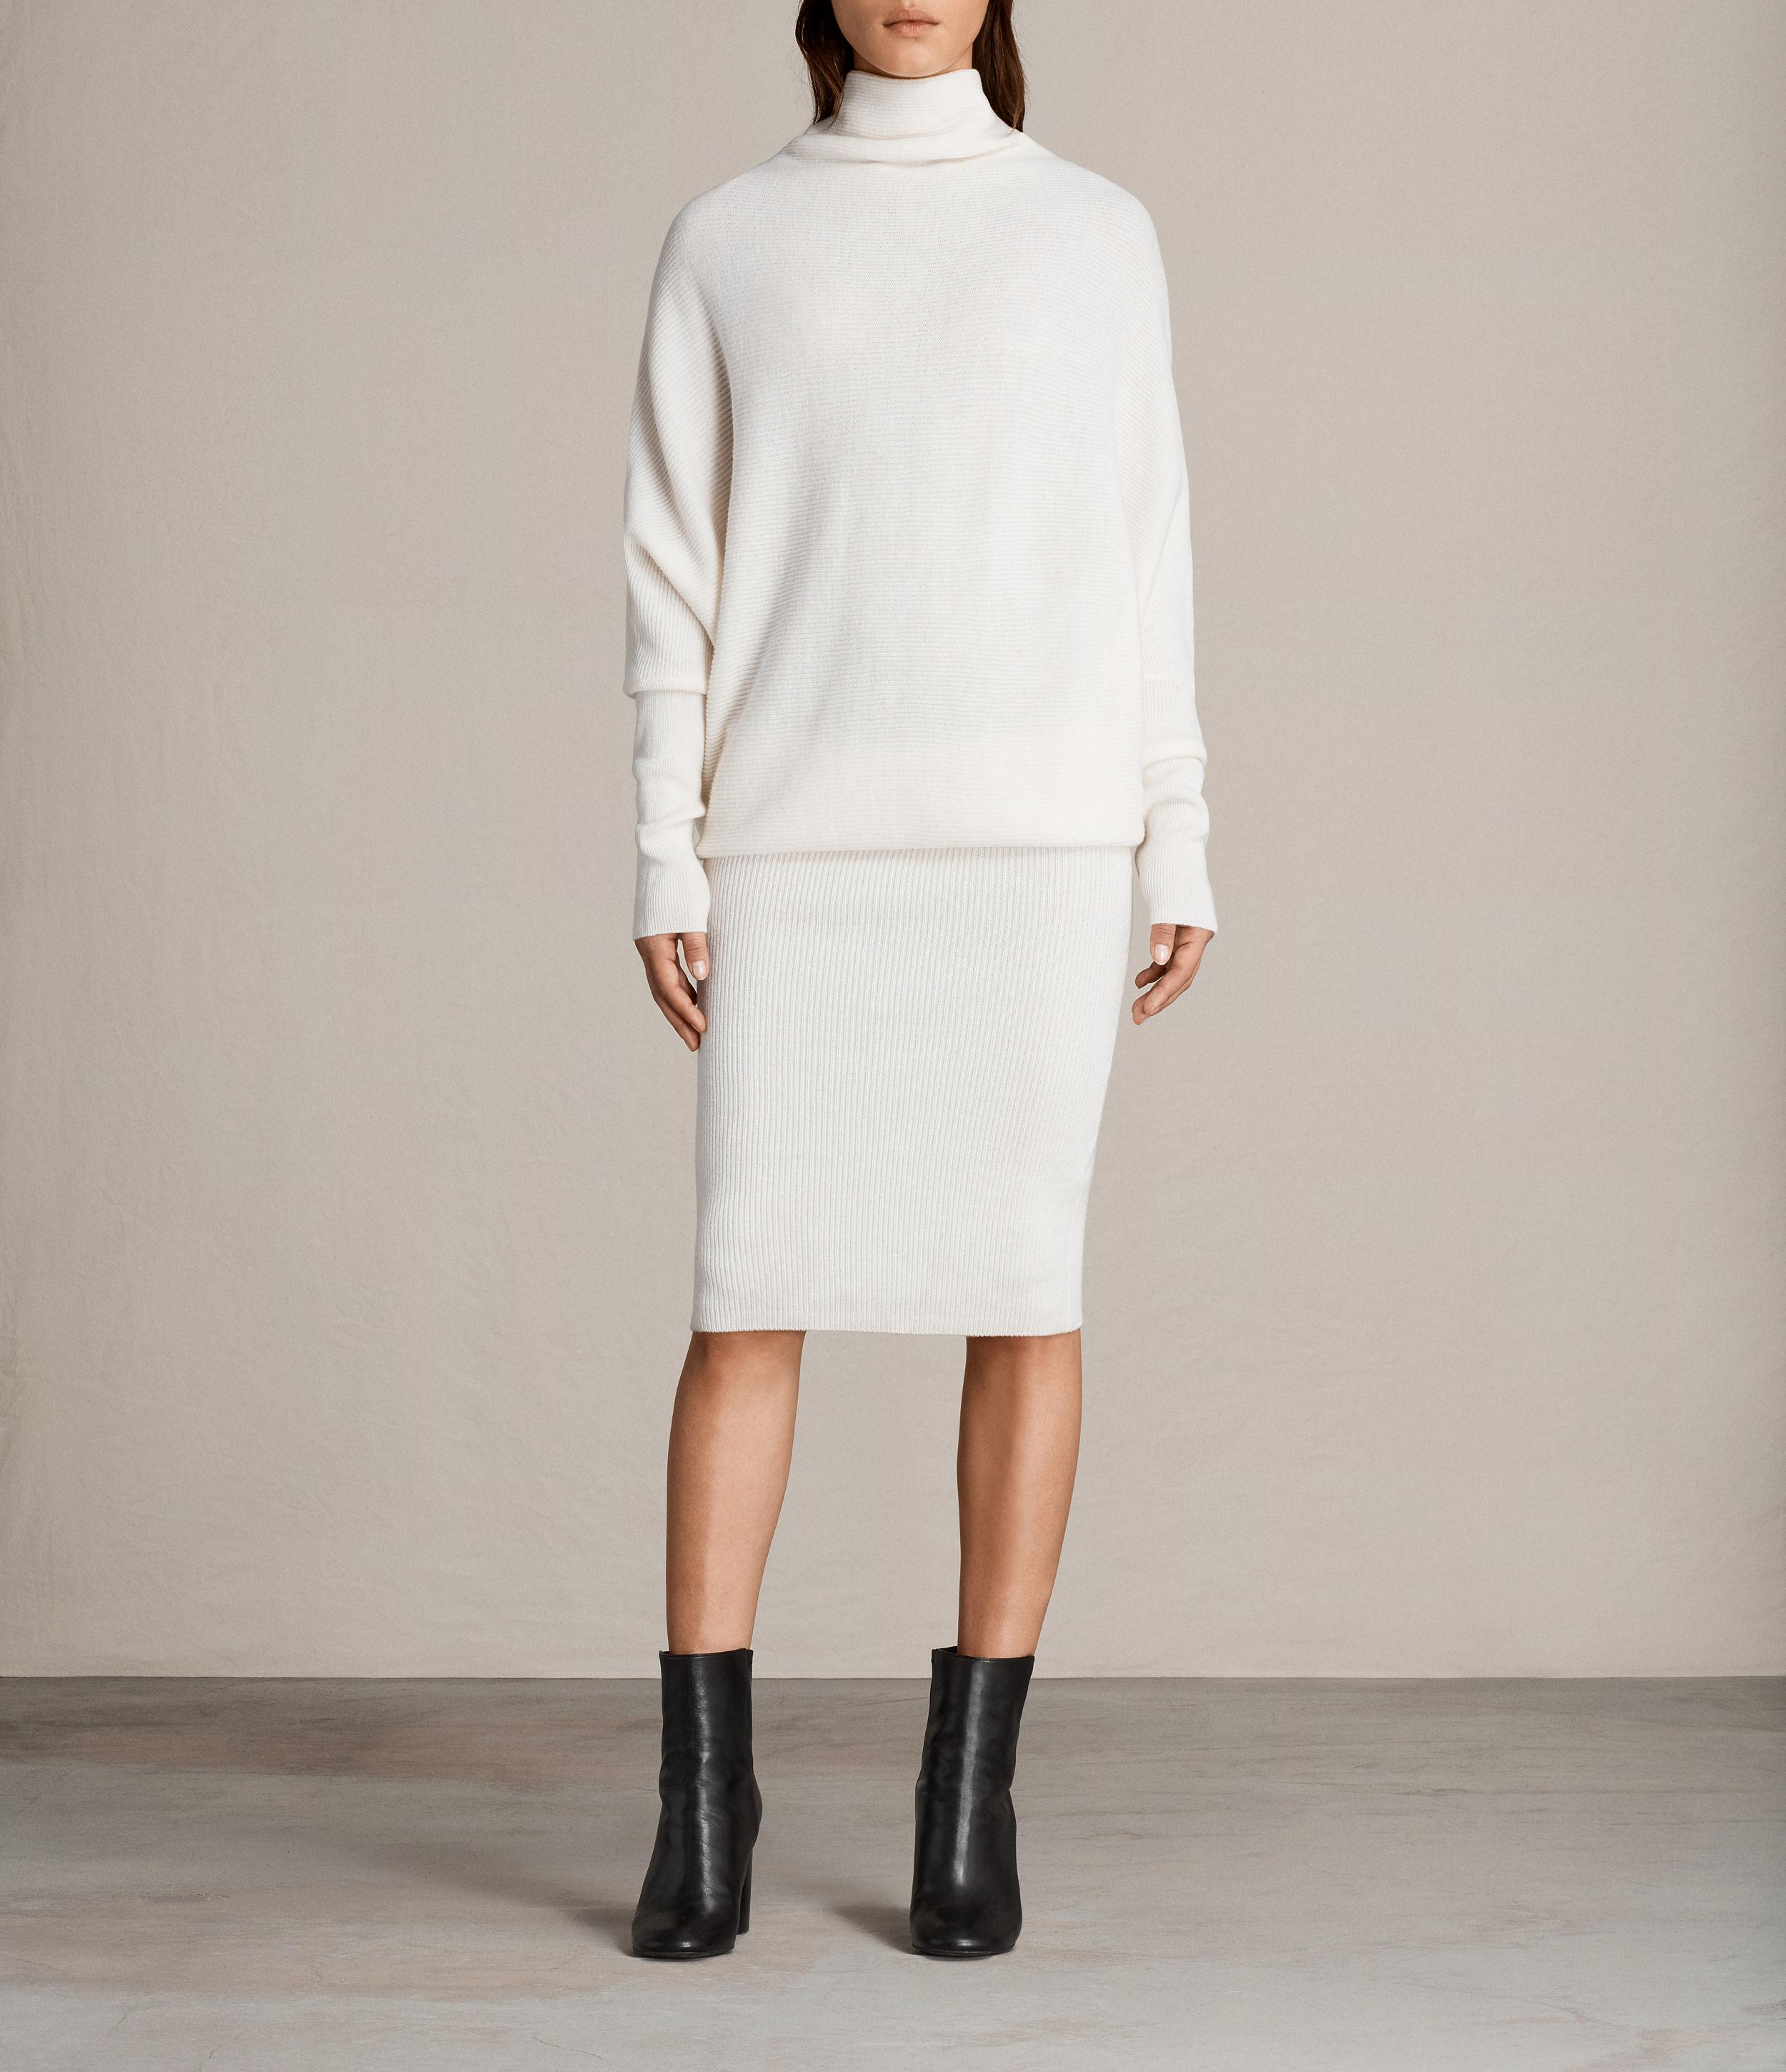 Lyst Allsaints Ridley Knitted Dress In White